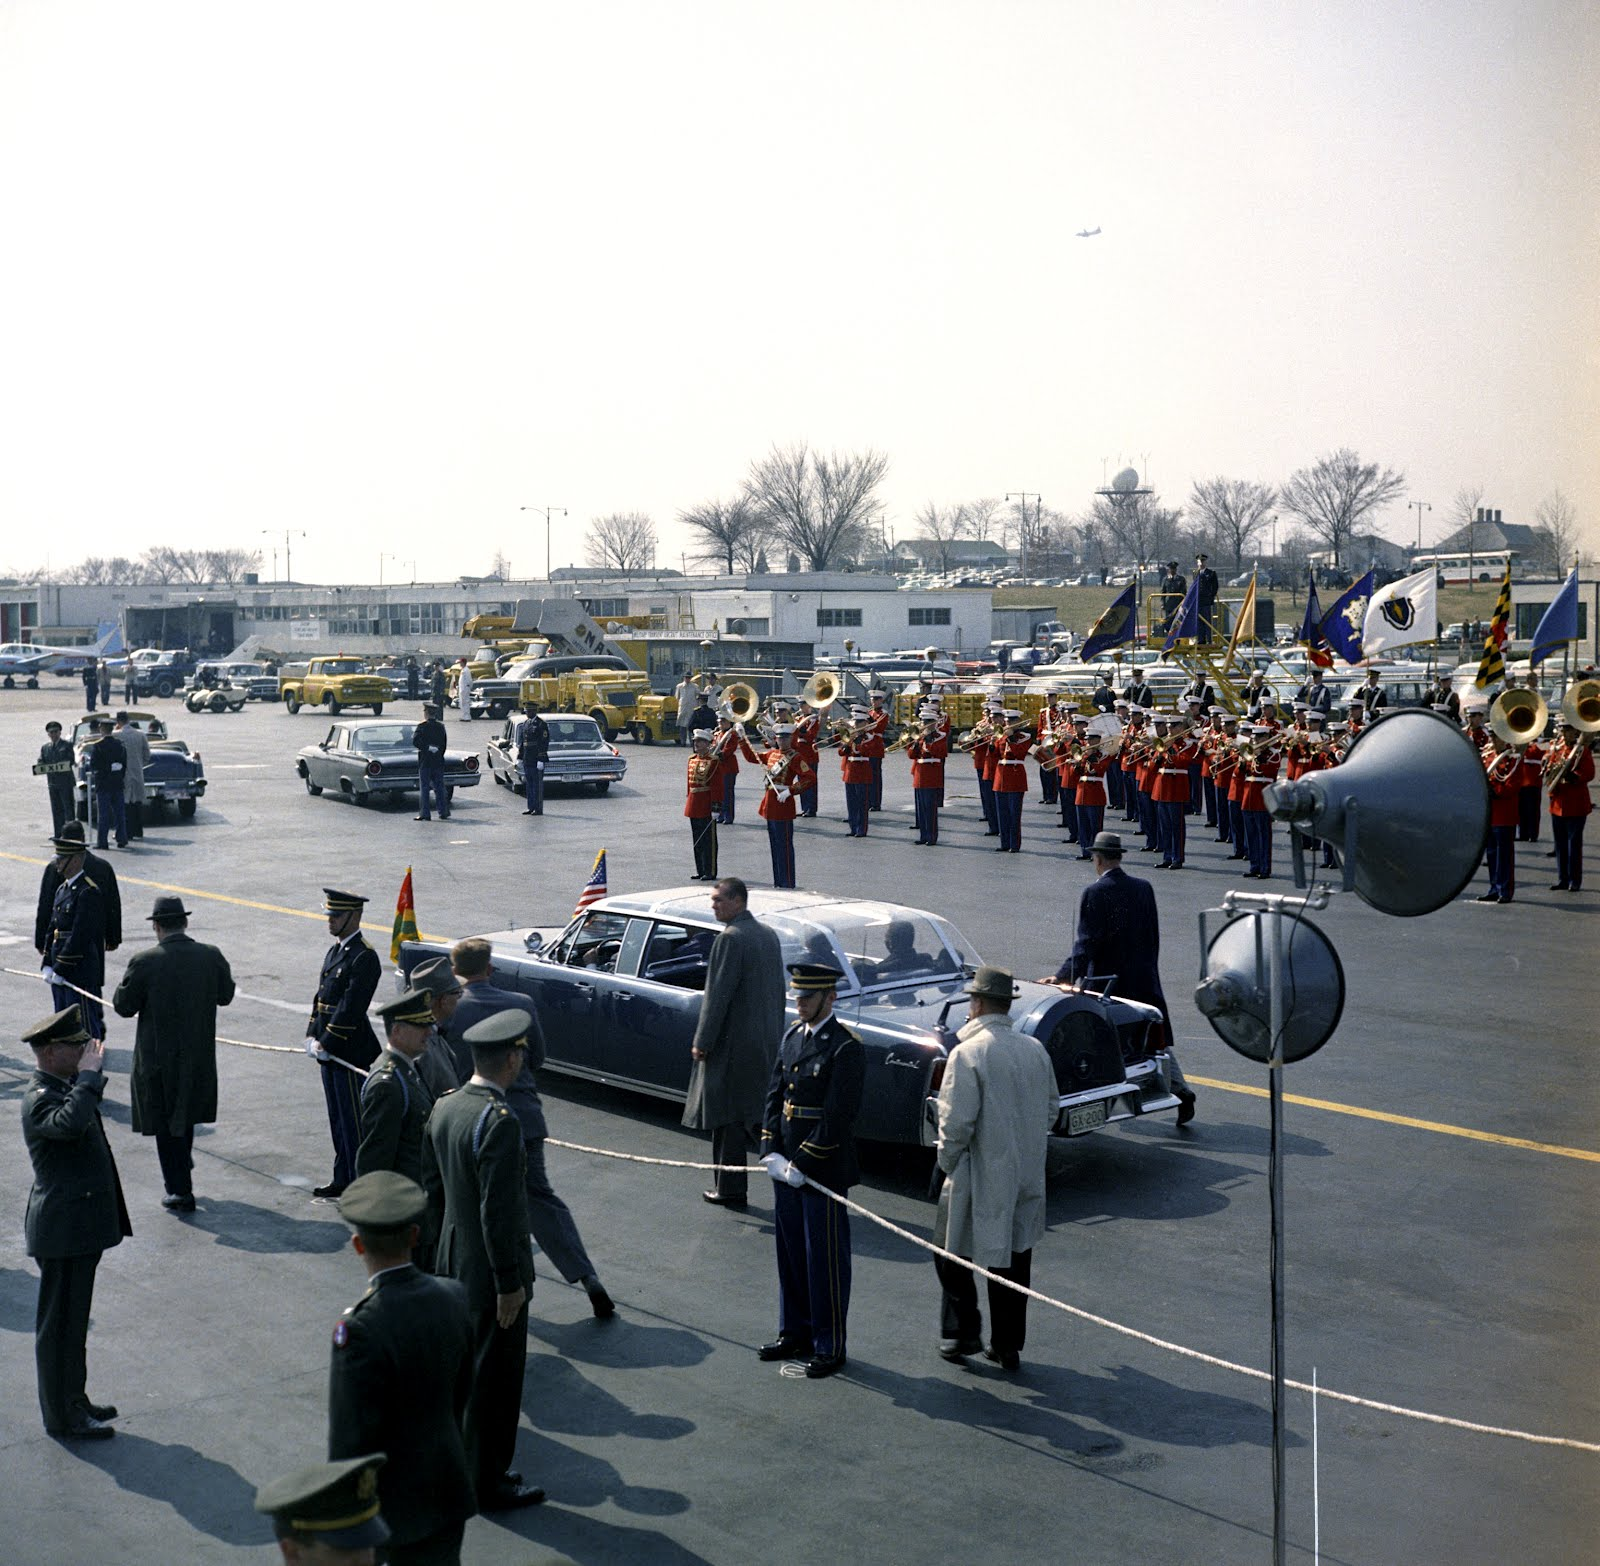 3/20/62: full bubbletop, agents beside limo